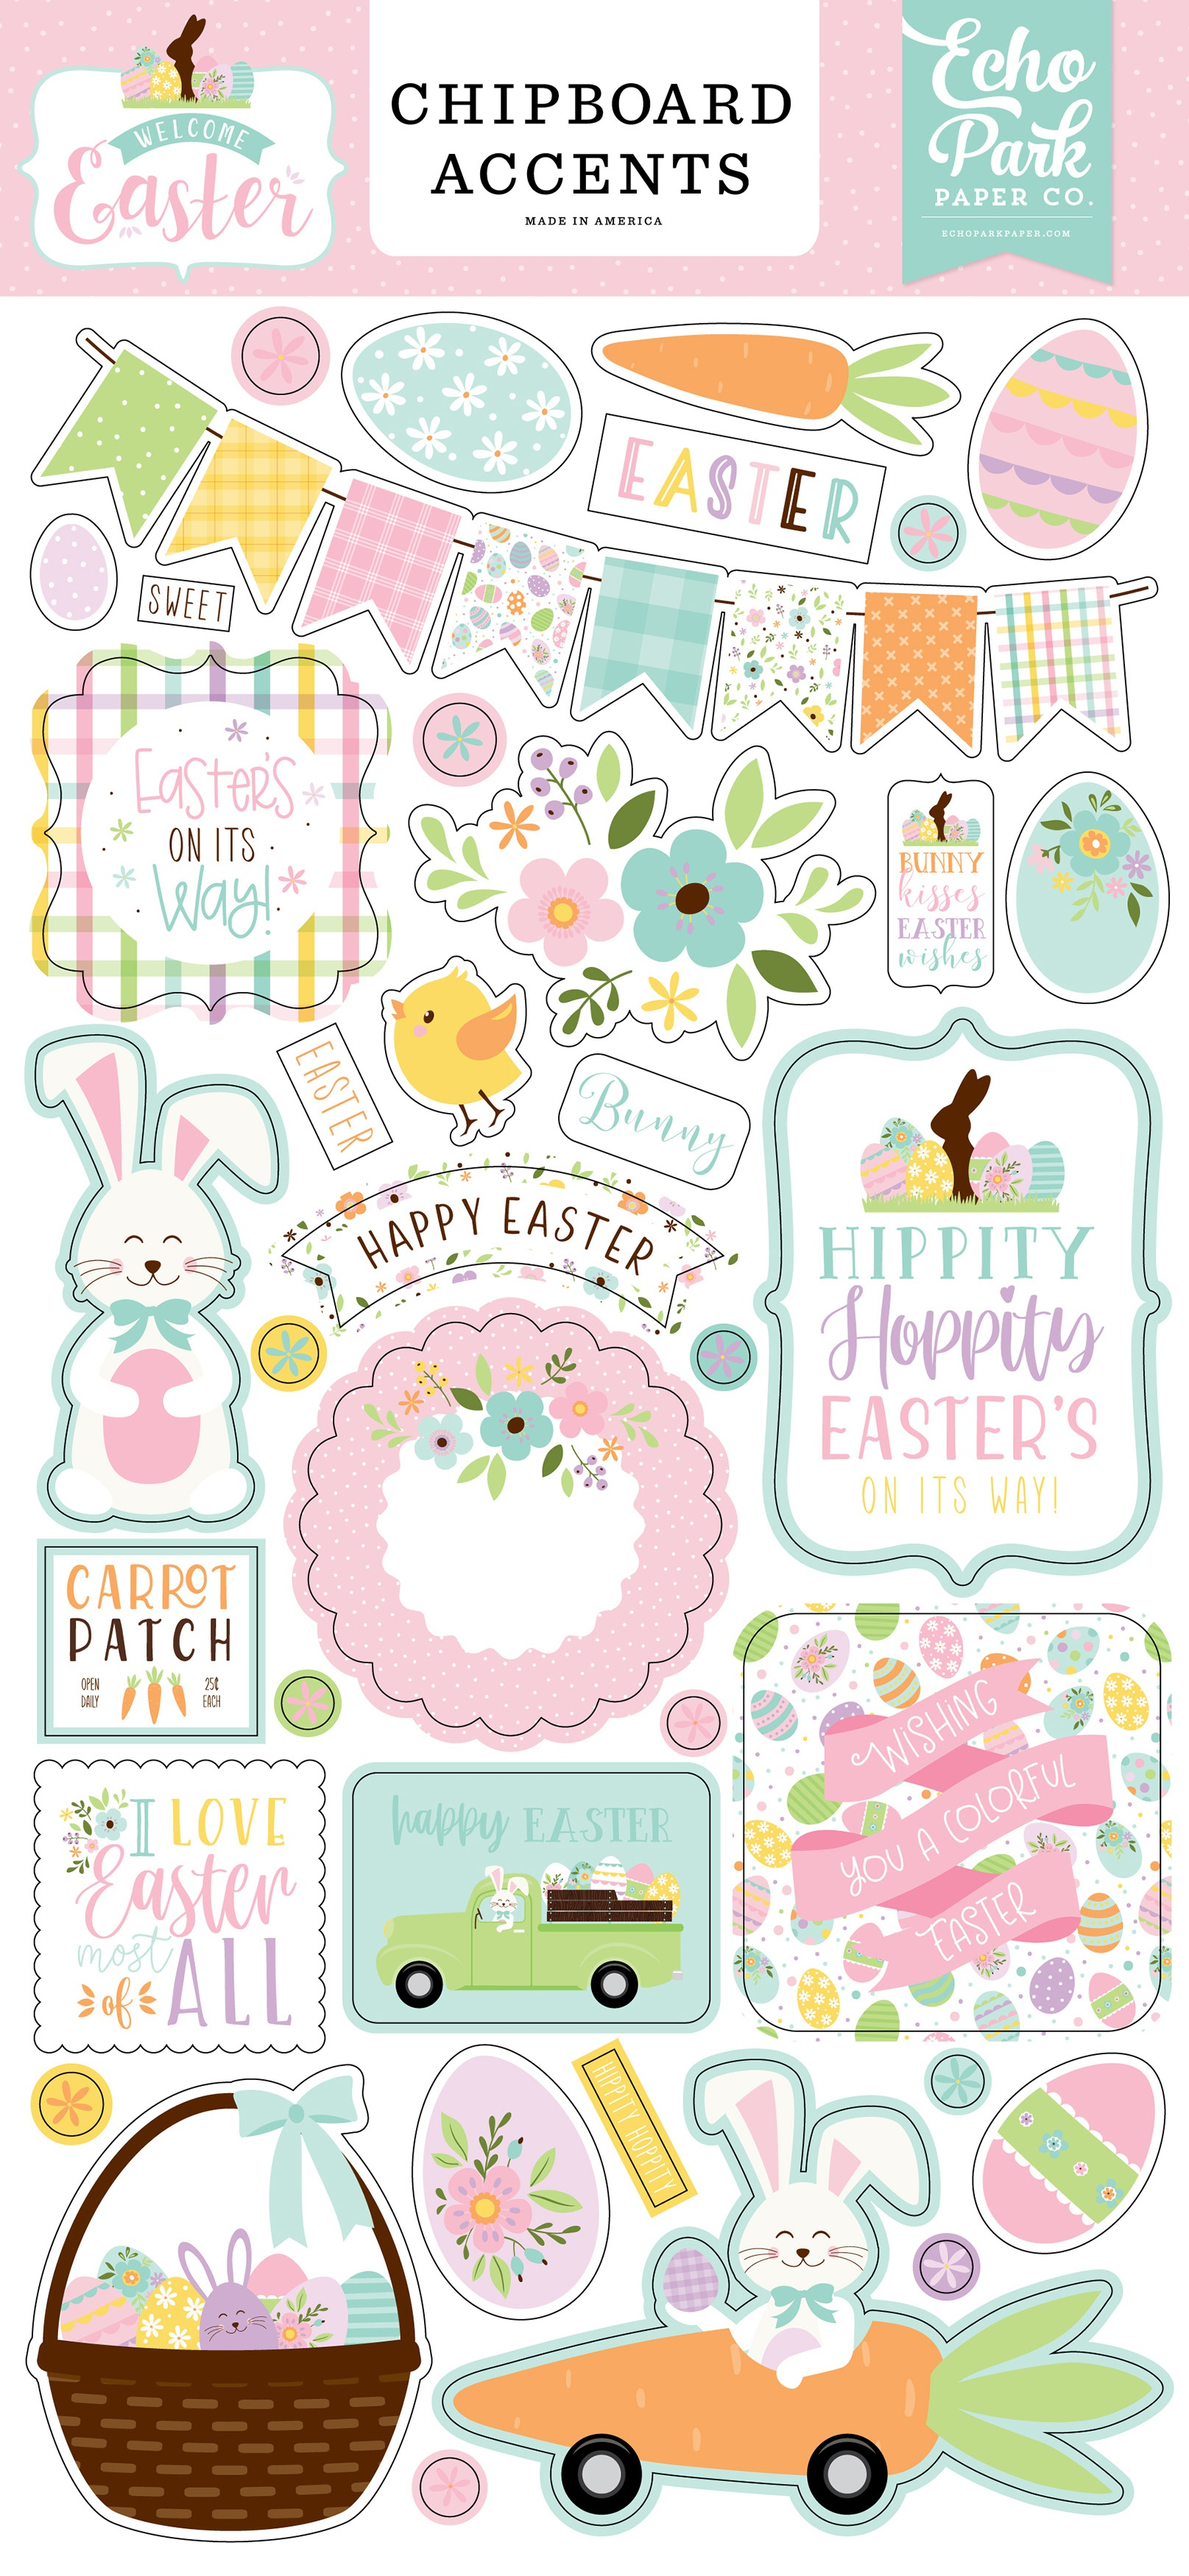 Welcome Easter Chipboard 6X13-Accents